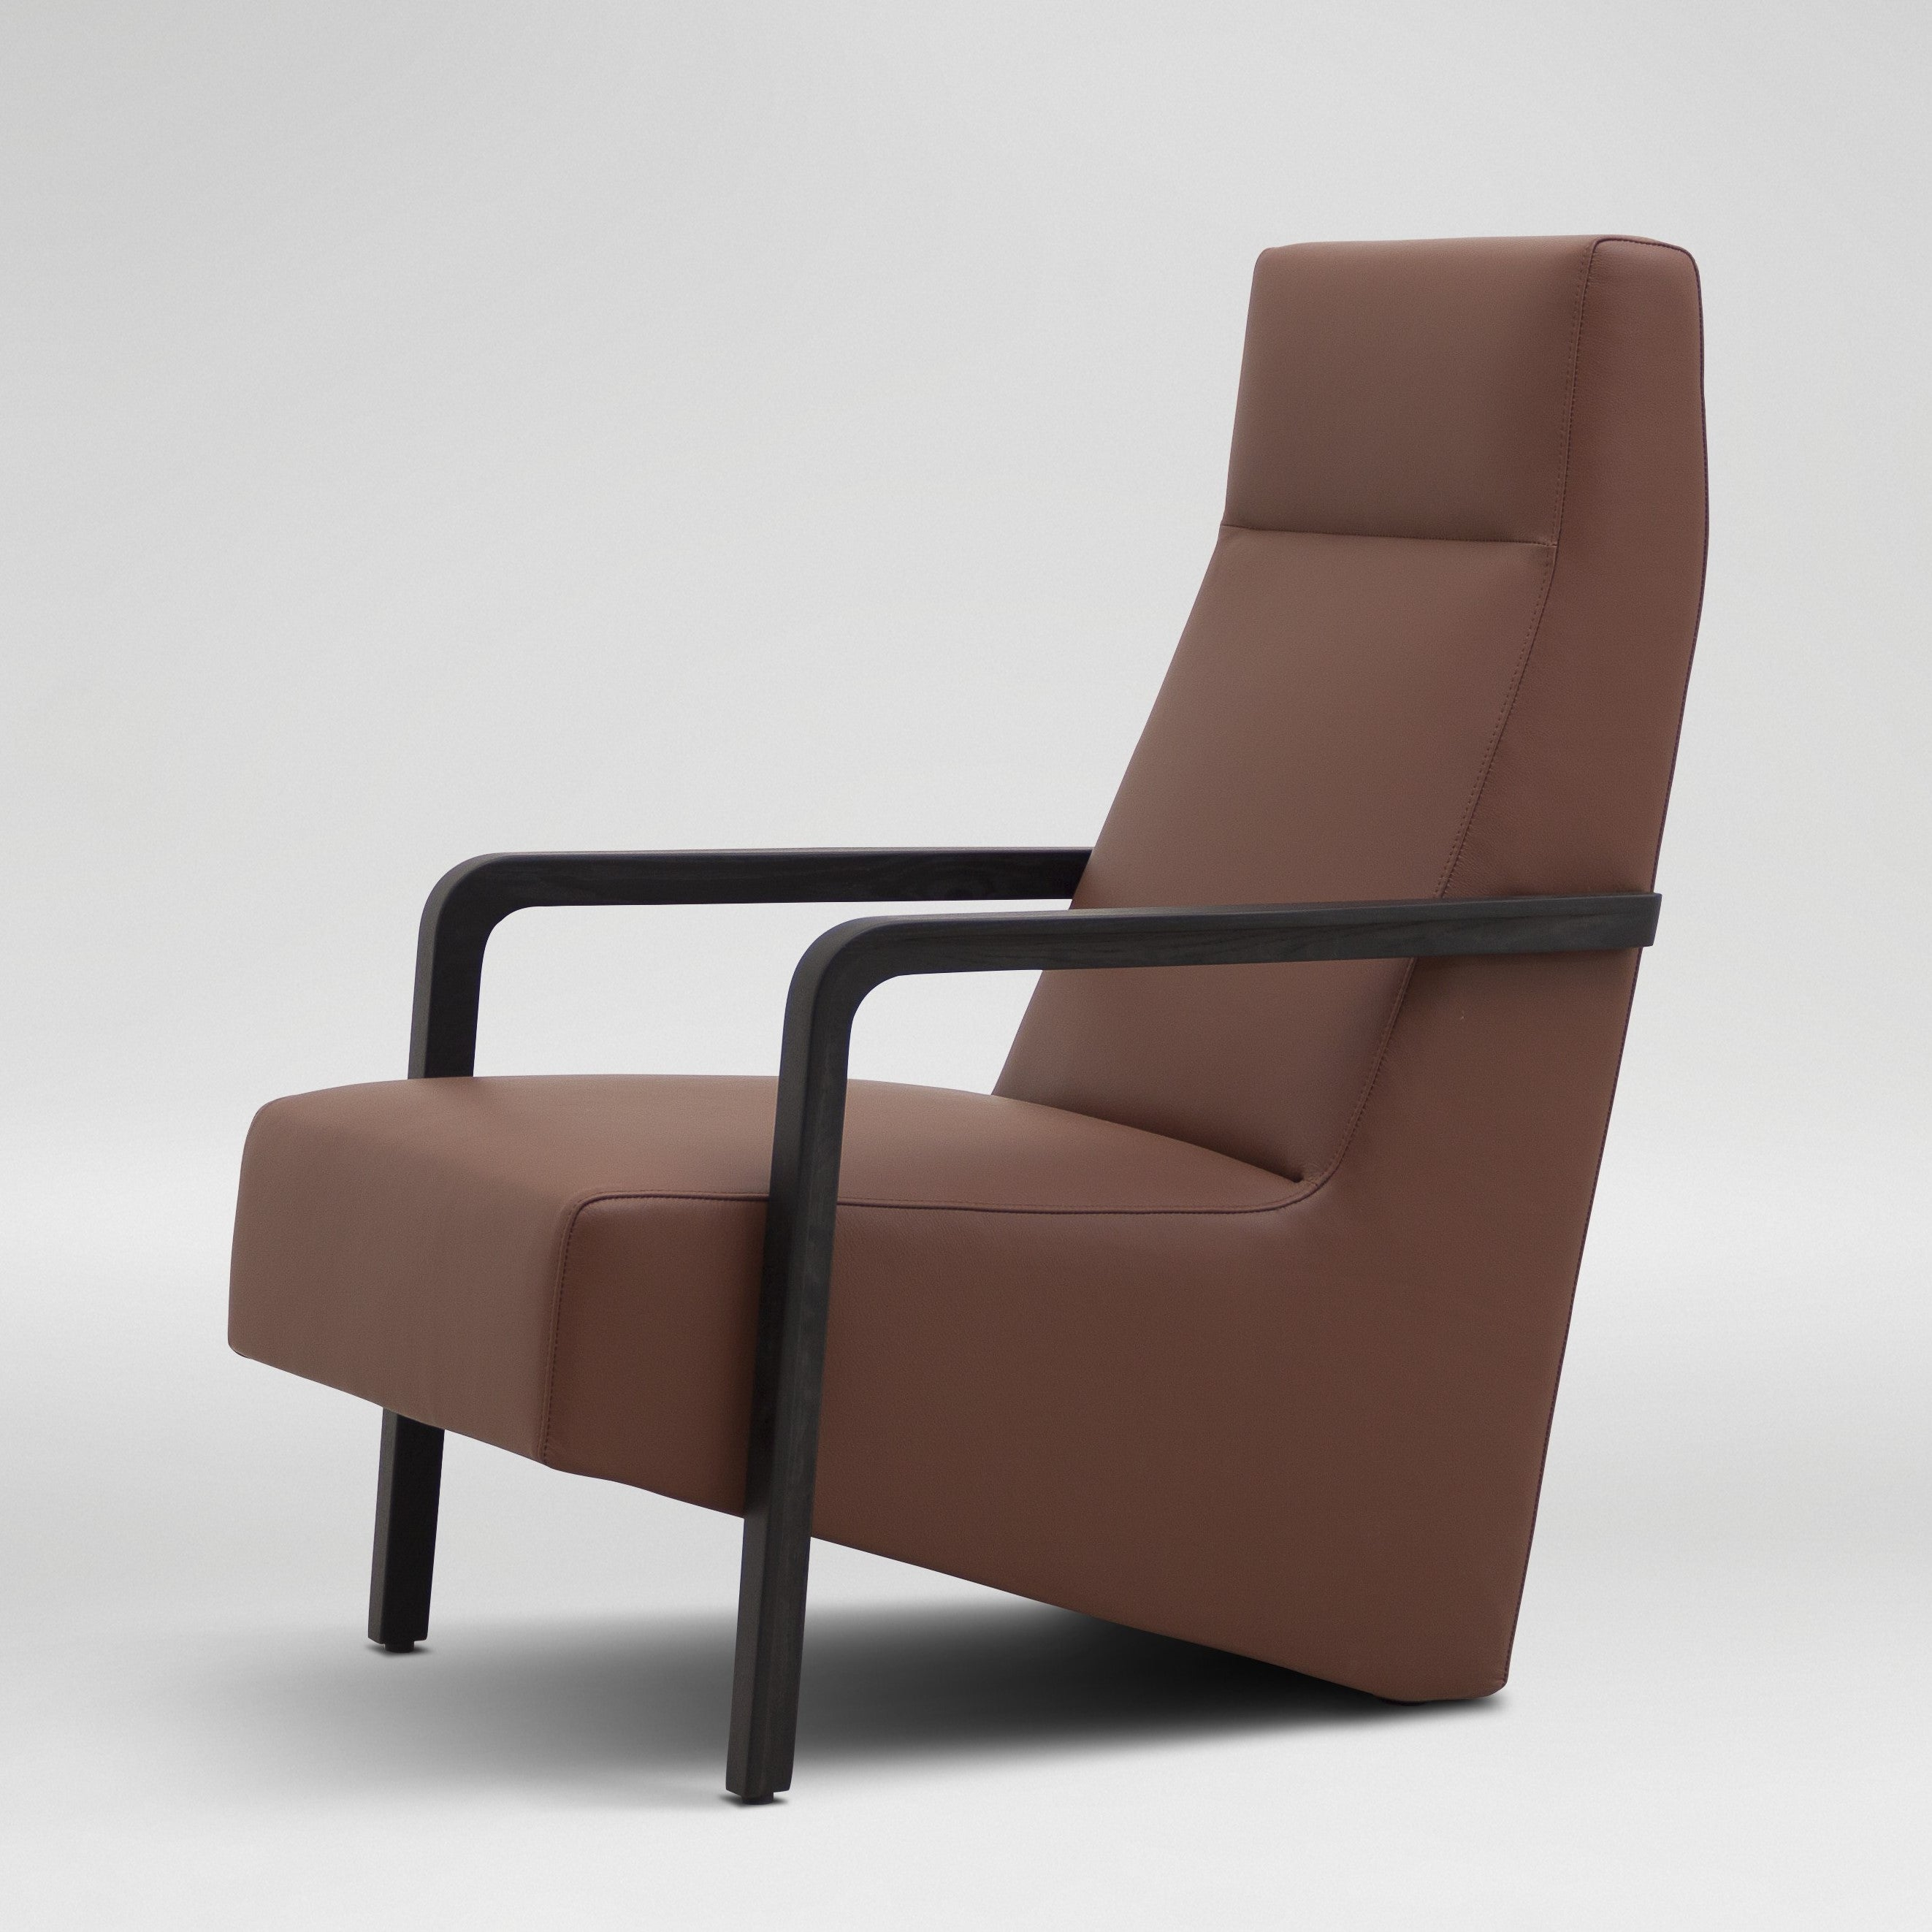 Vast Lounge Chair